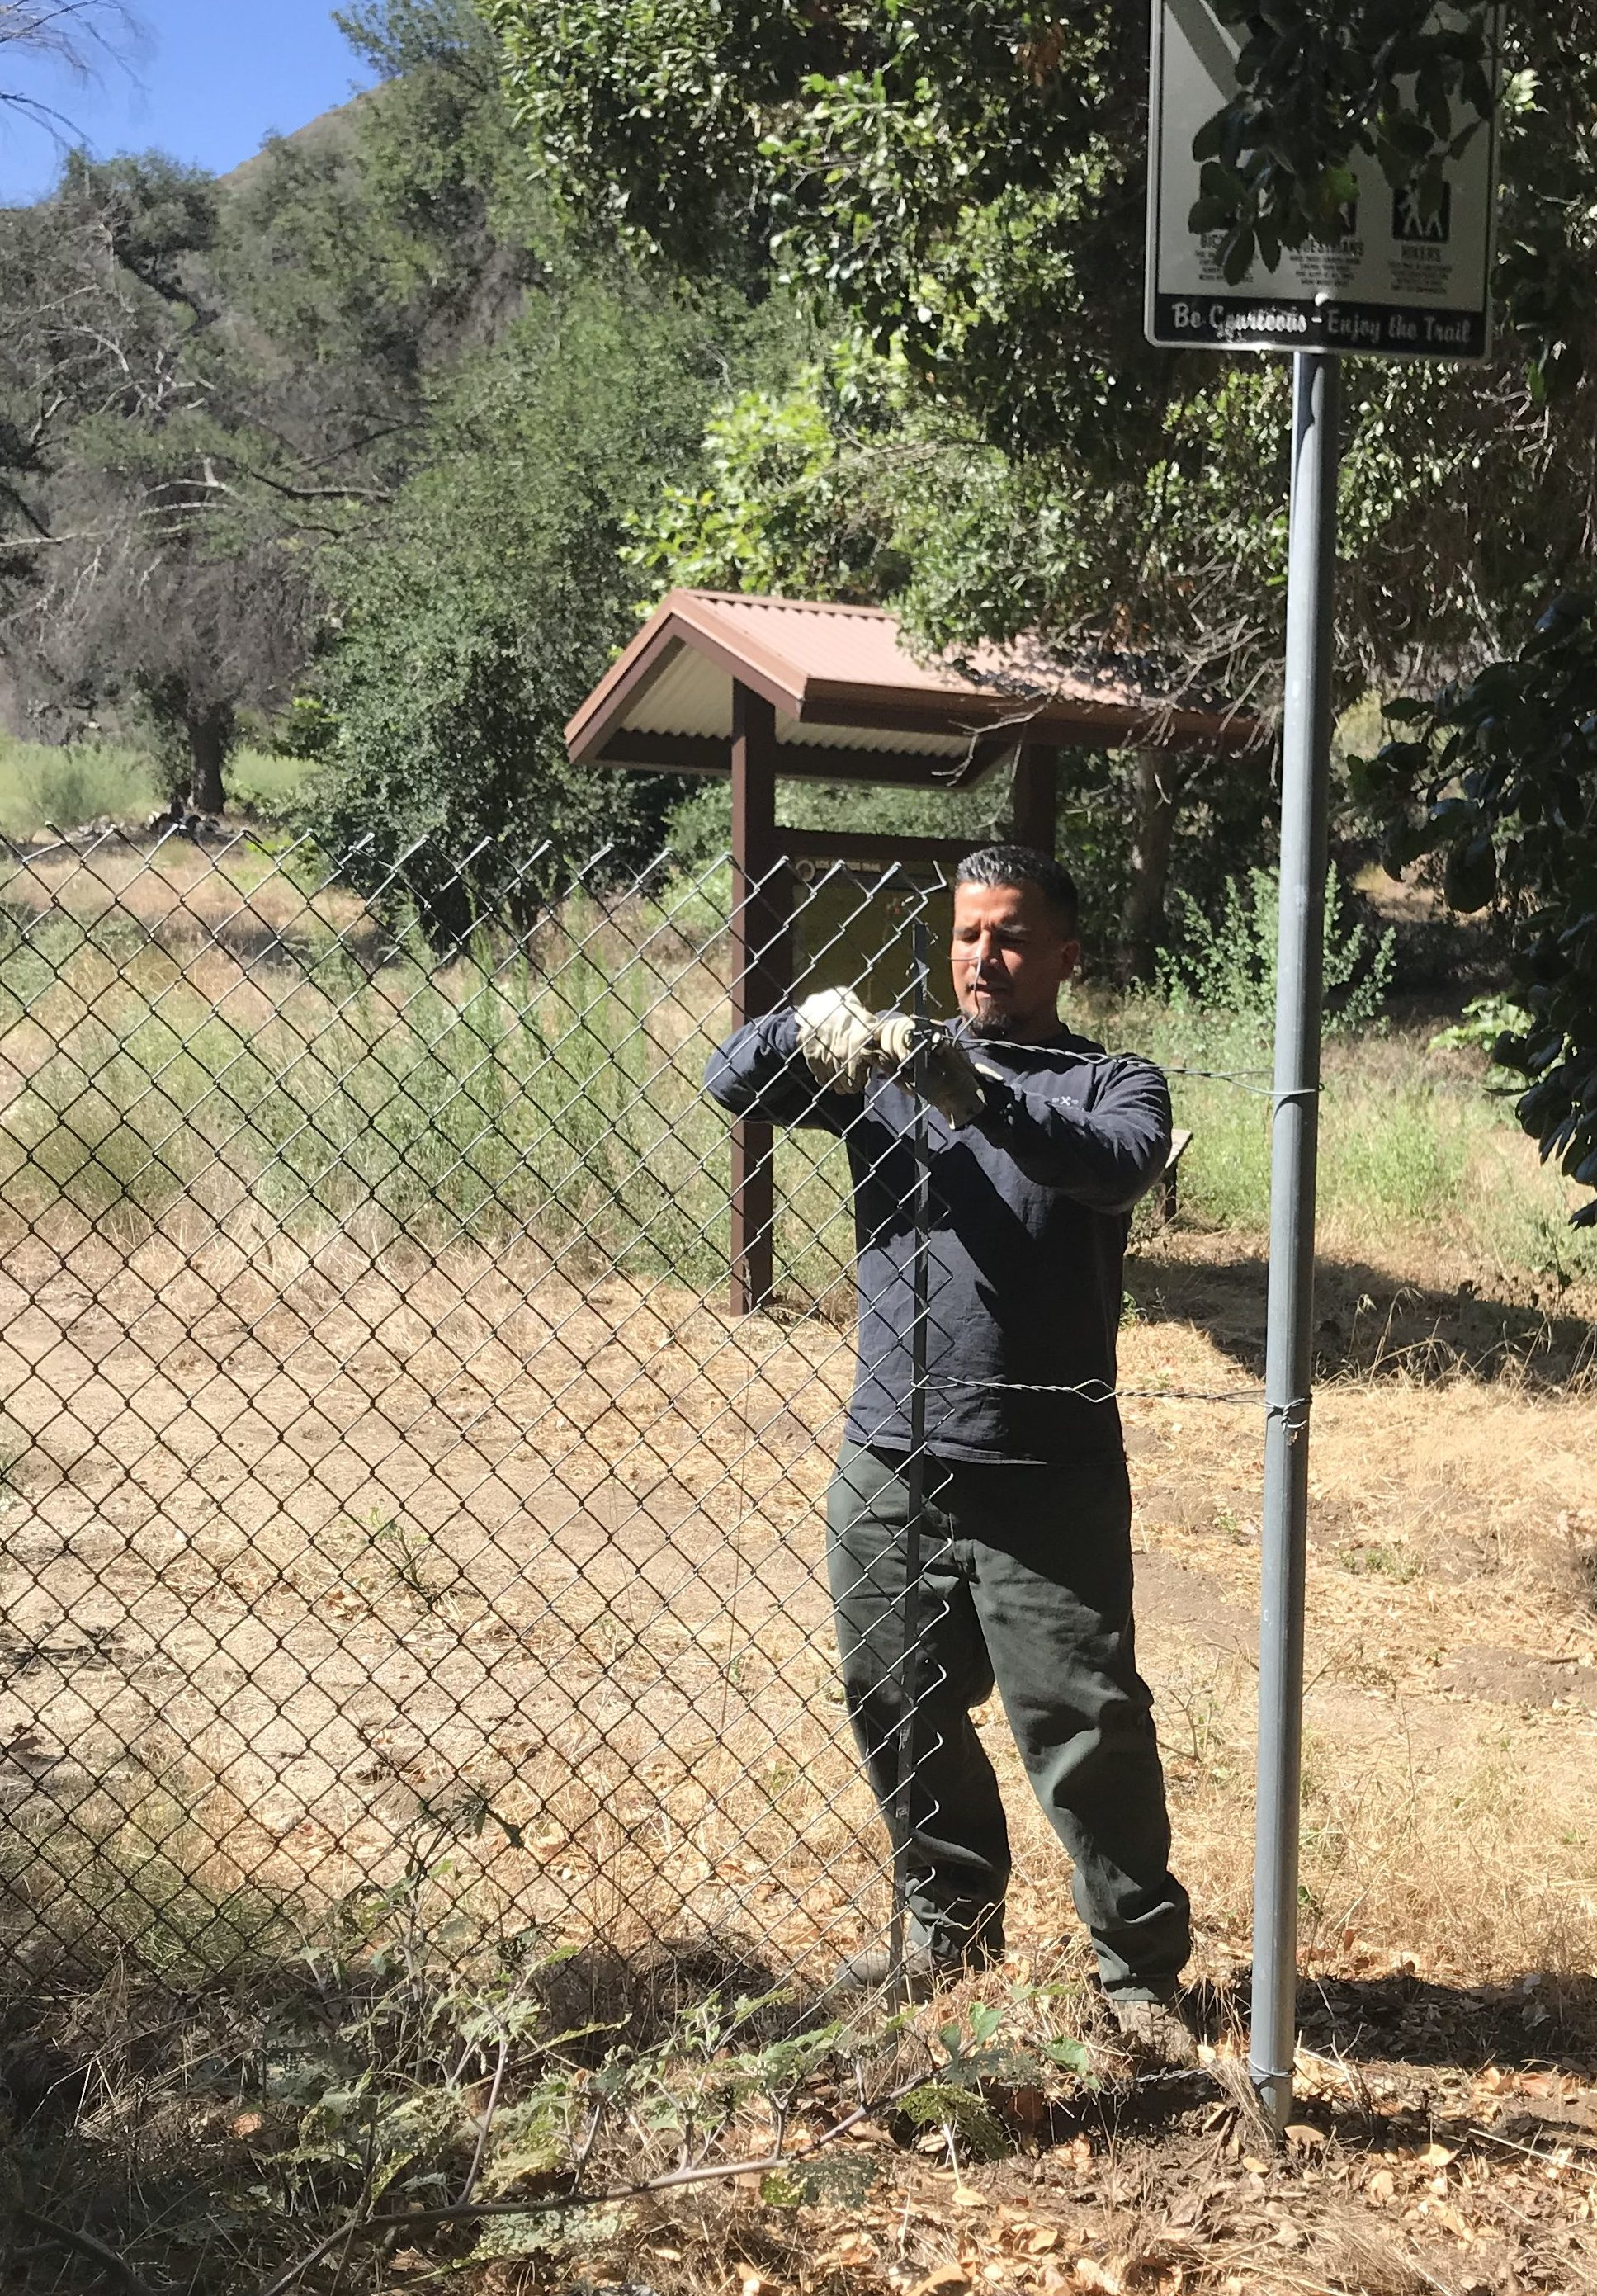 LA County Parks Staff remove the fence at the trailhead, opening the trail